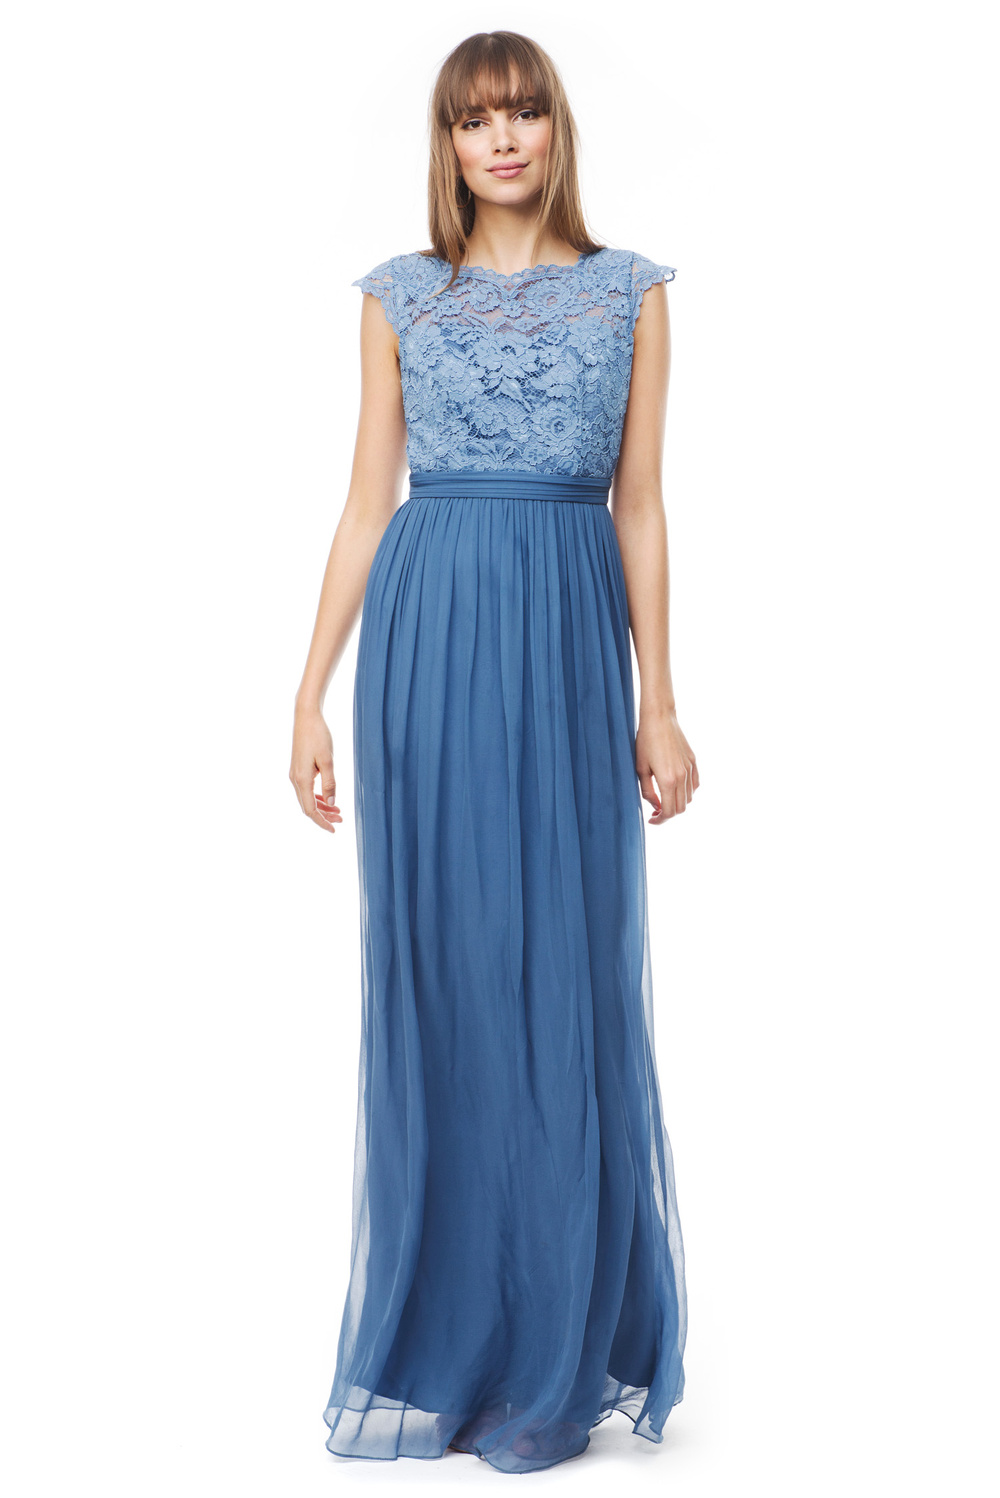 Classic dresses - By Malina Official | Designer Clothing & Accessories